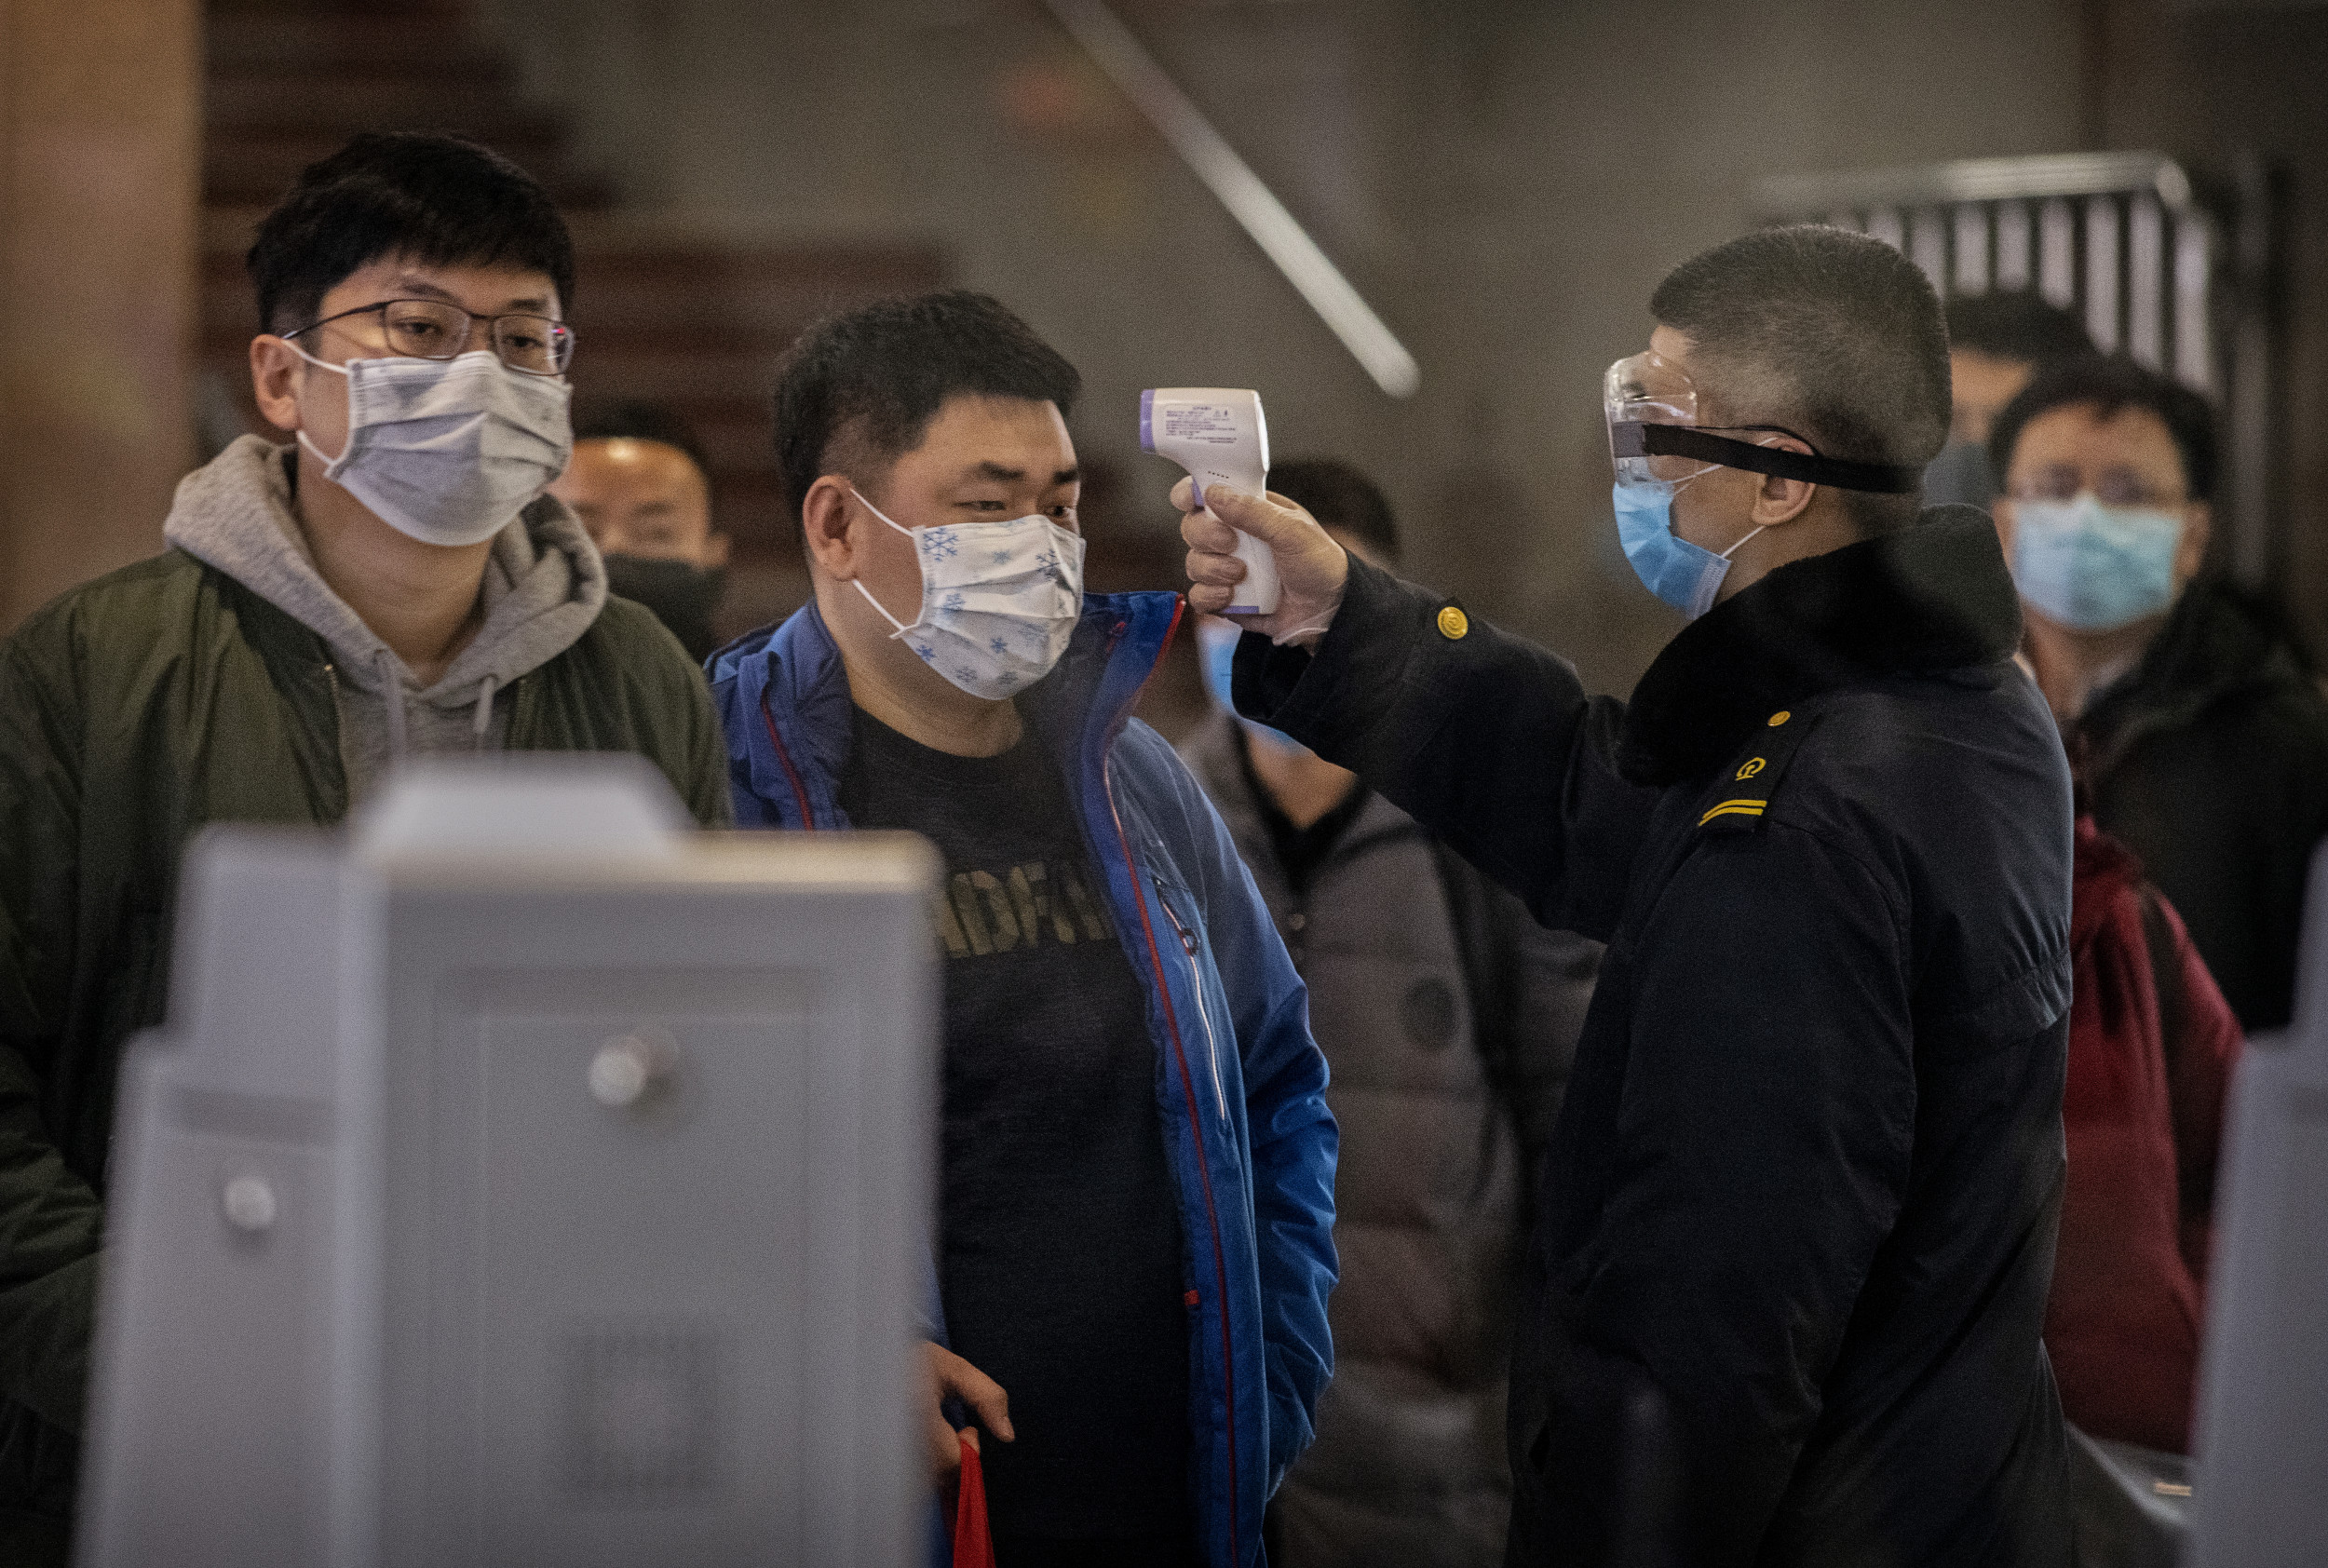 WHO's top China official said Beijing gave agency coronavirus information minutes before it appeared on state media